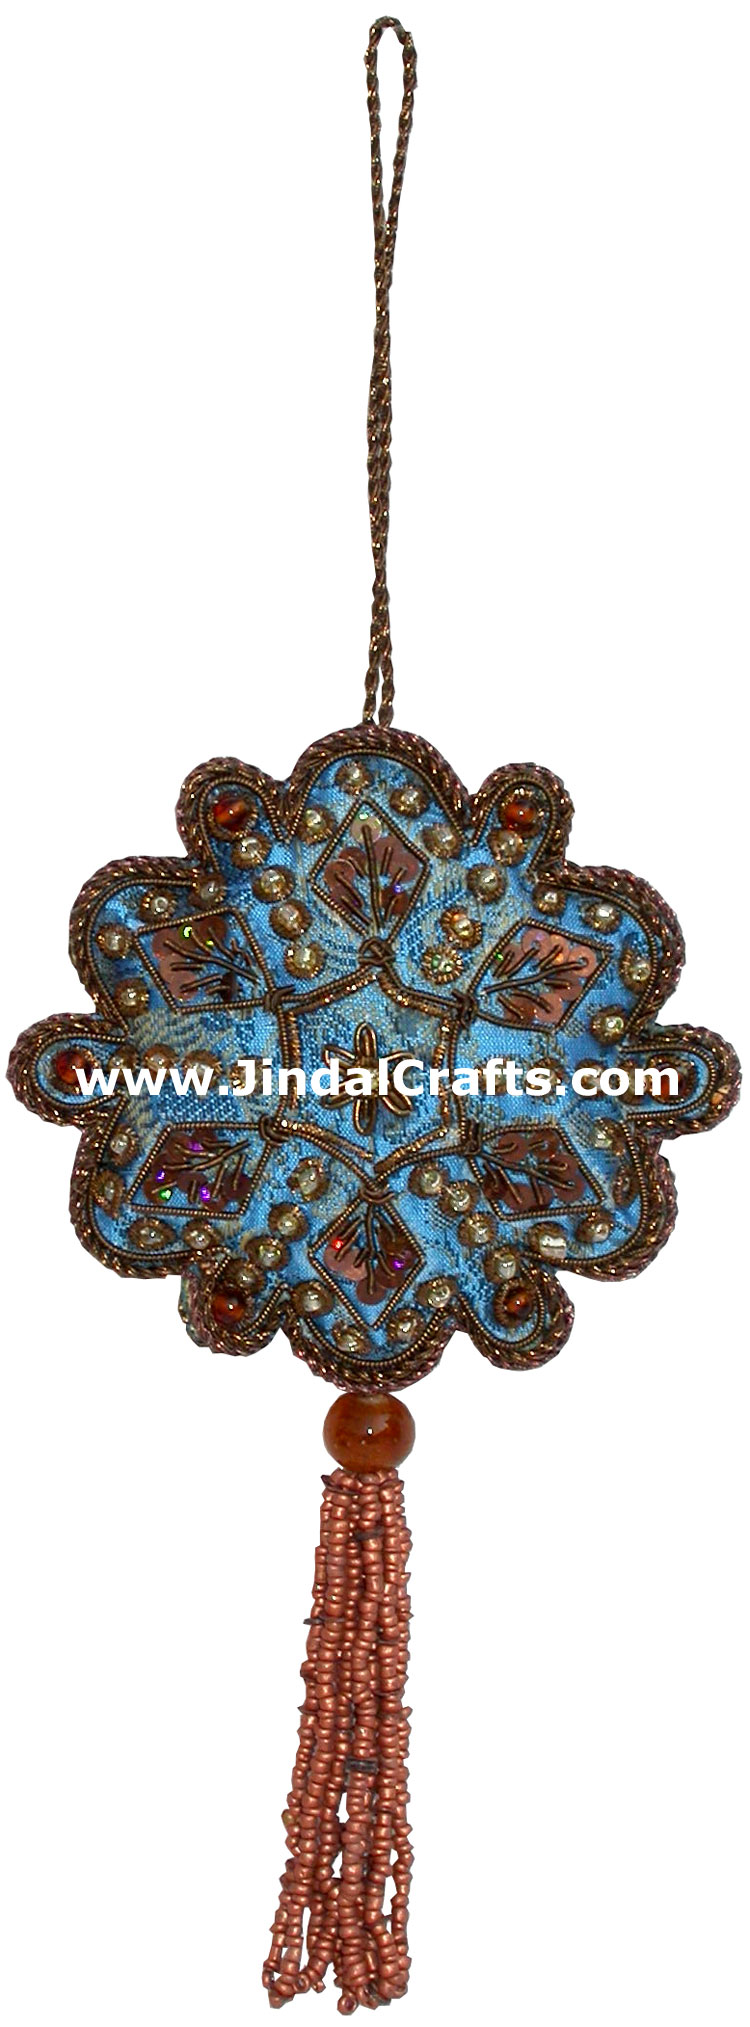 Christmas decorative gt ornaments gt beaded ornaments hand embroidered